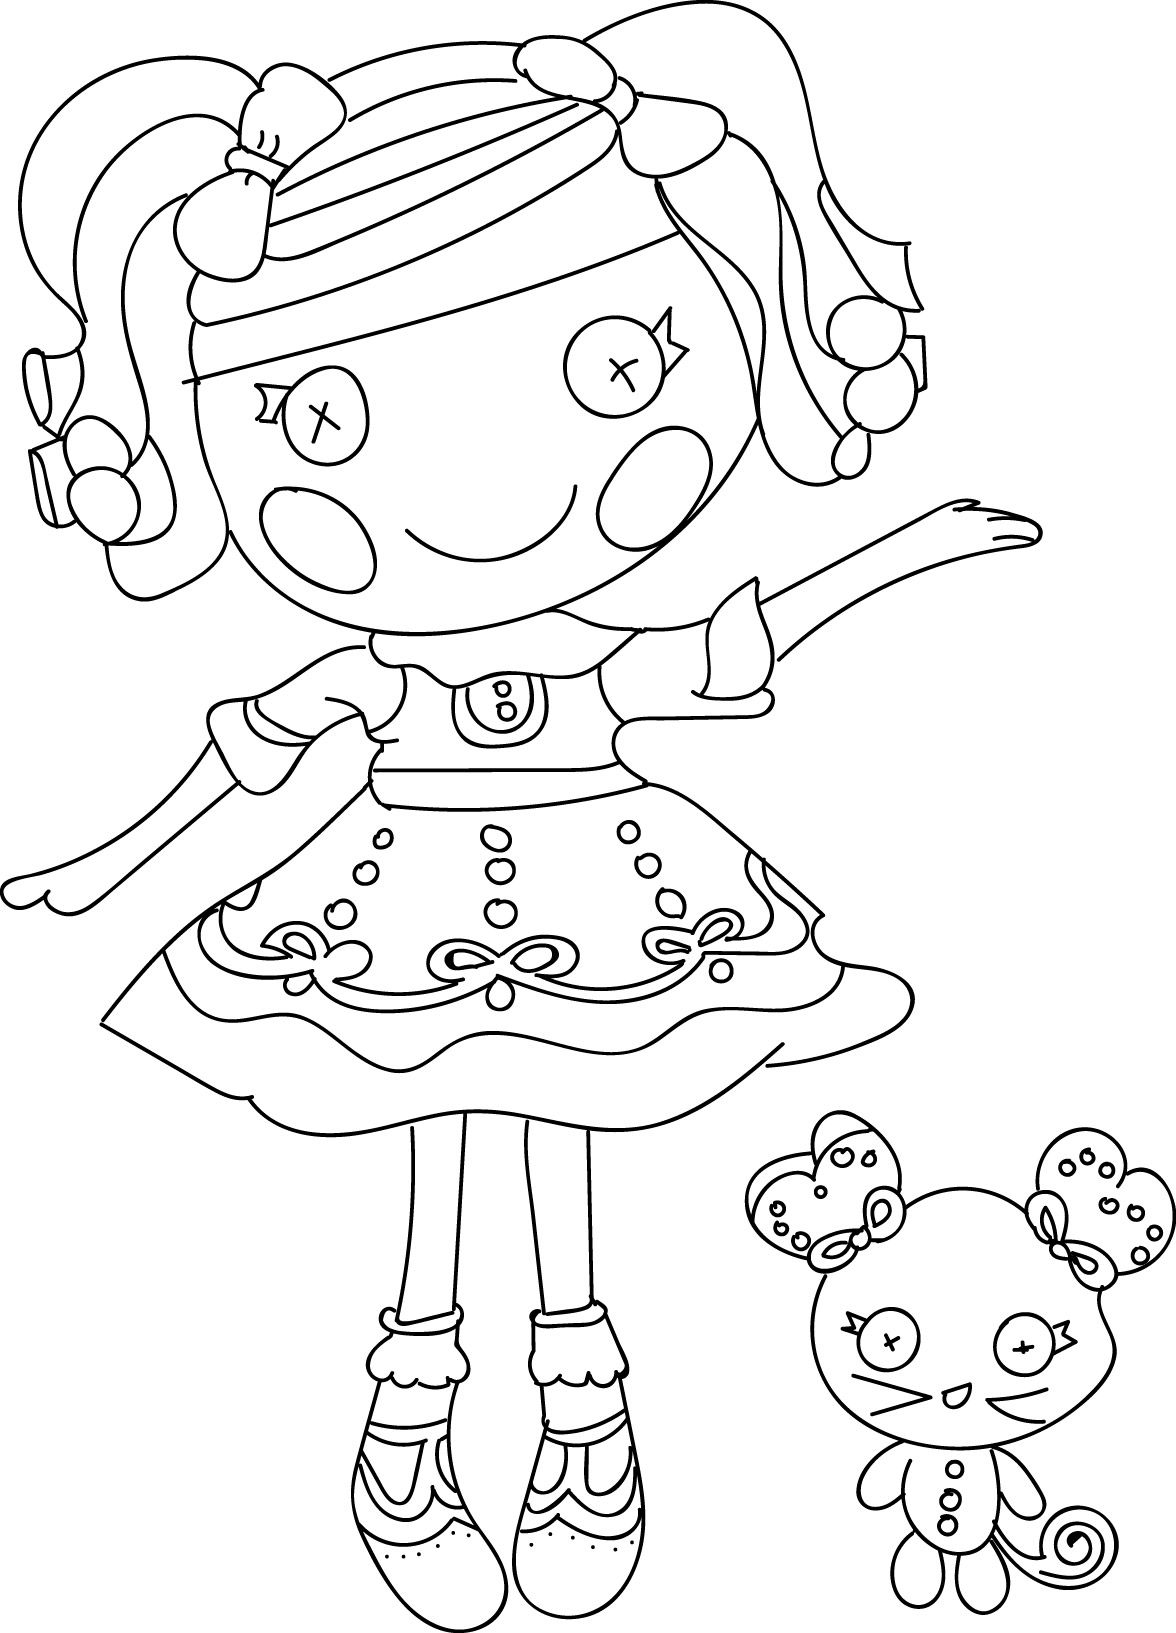 Lalaloopsy Cartoon Coloring Pages Lalaloopsy Cartoon and Clothing